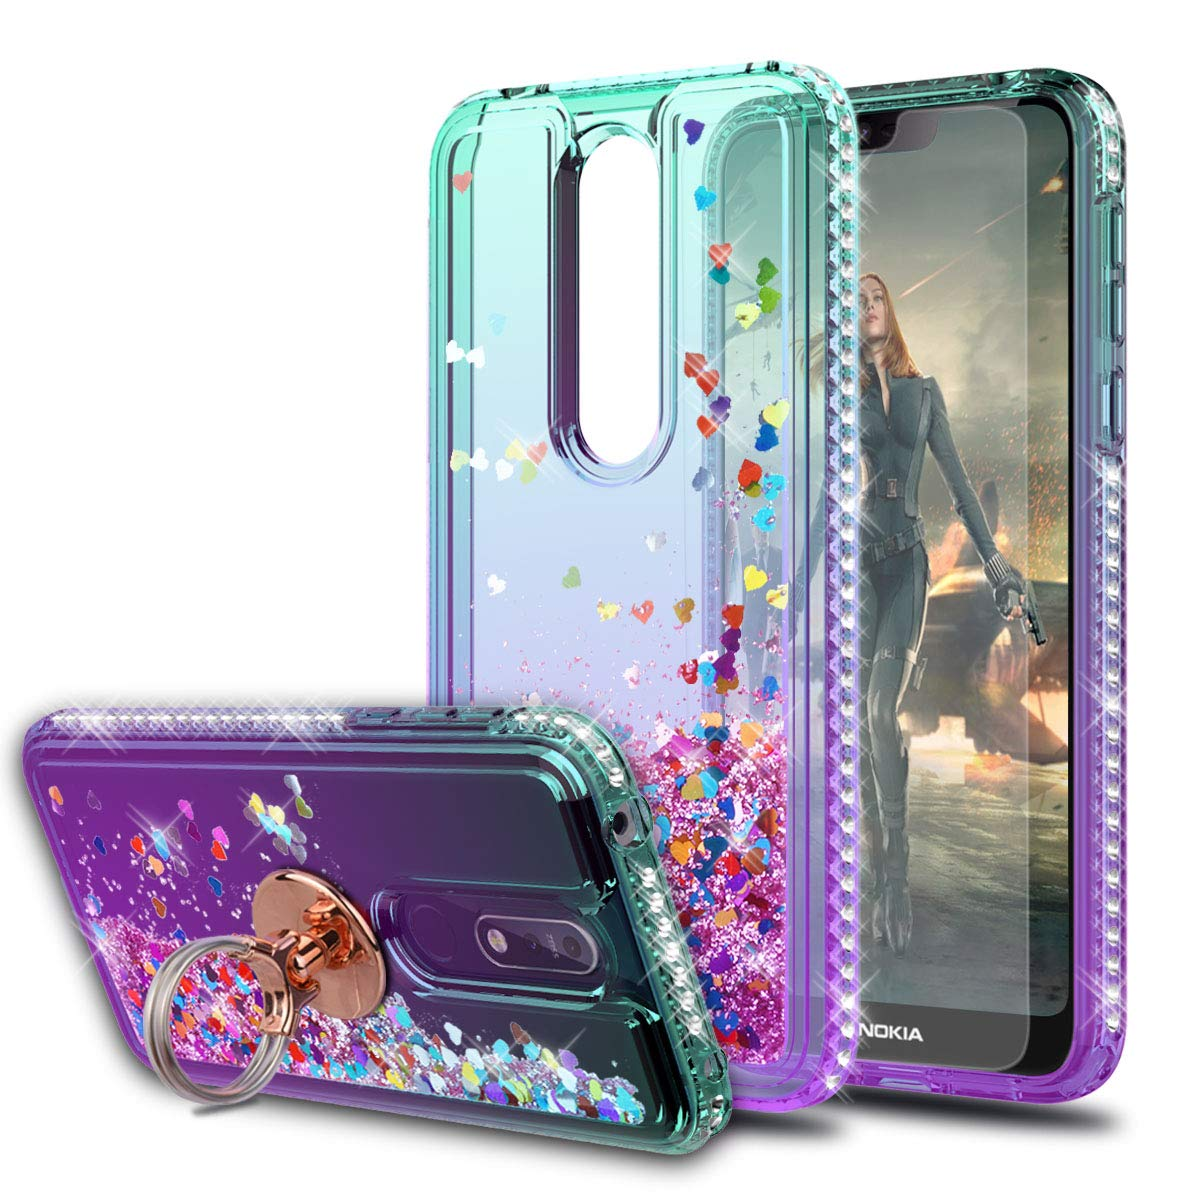 Nokia 7.1 Case with HD Screen Protector with Ring Holder,KaiMai Glitter Moving Quicksand Clear Cute Shiny Phone Case for Nokia 7.1-Aqua/Purple Ring by KaiMai